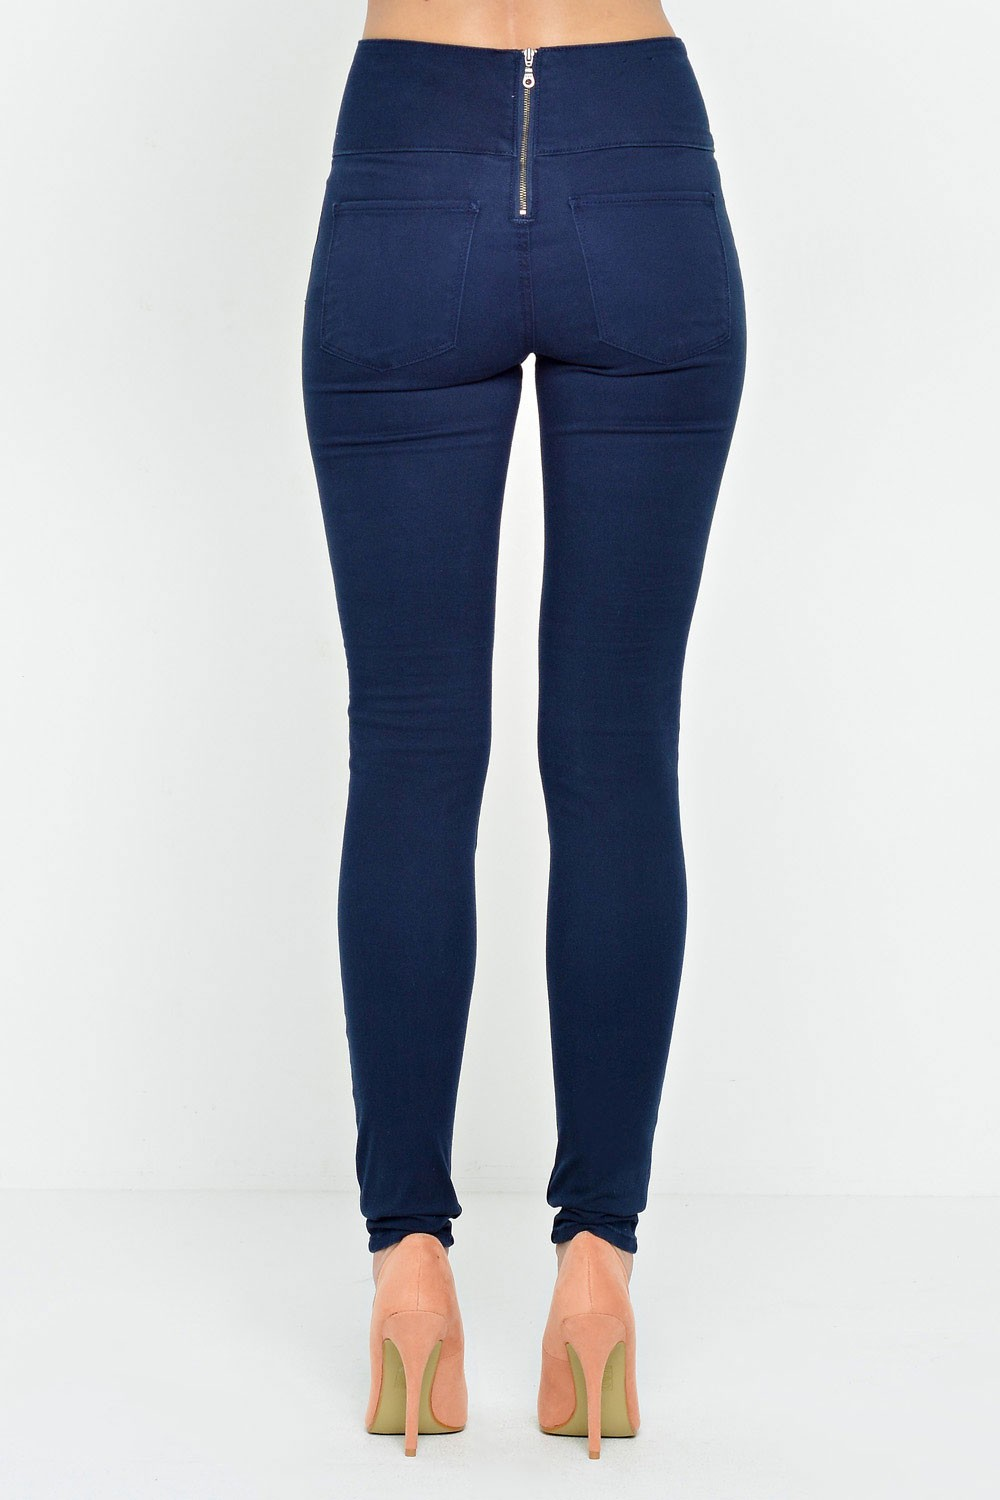 Pieces jeggings review